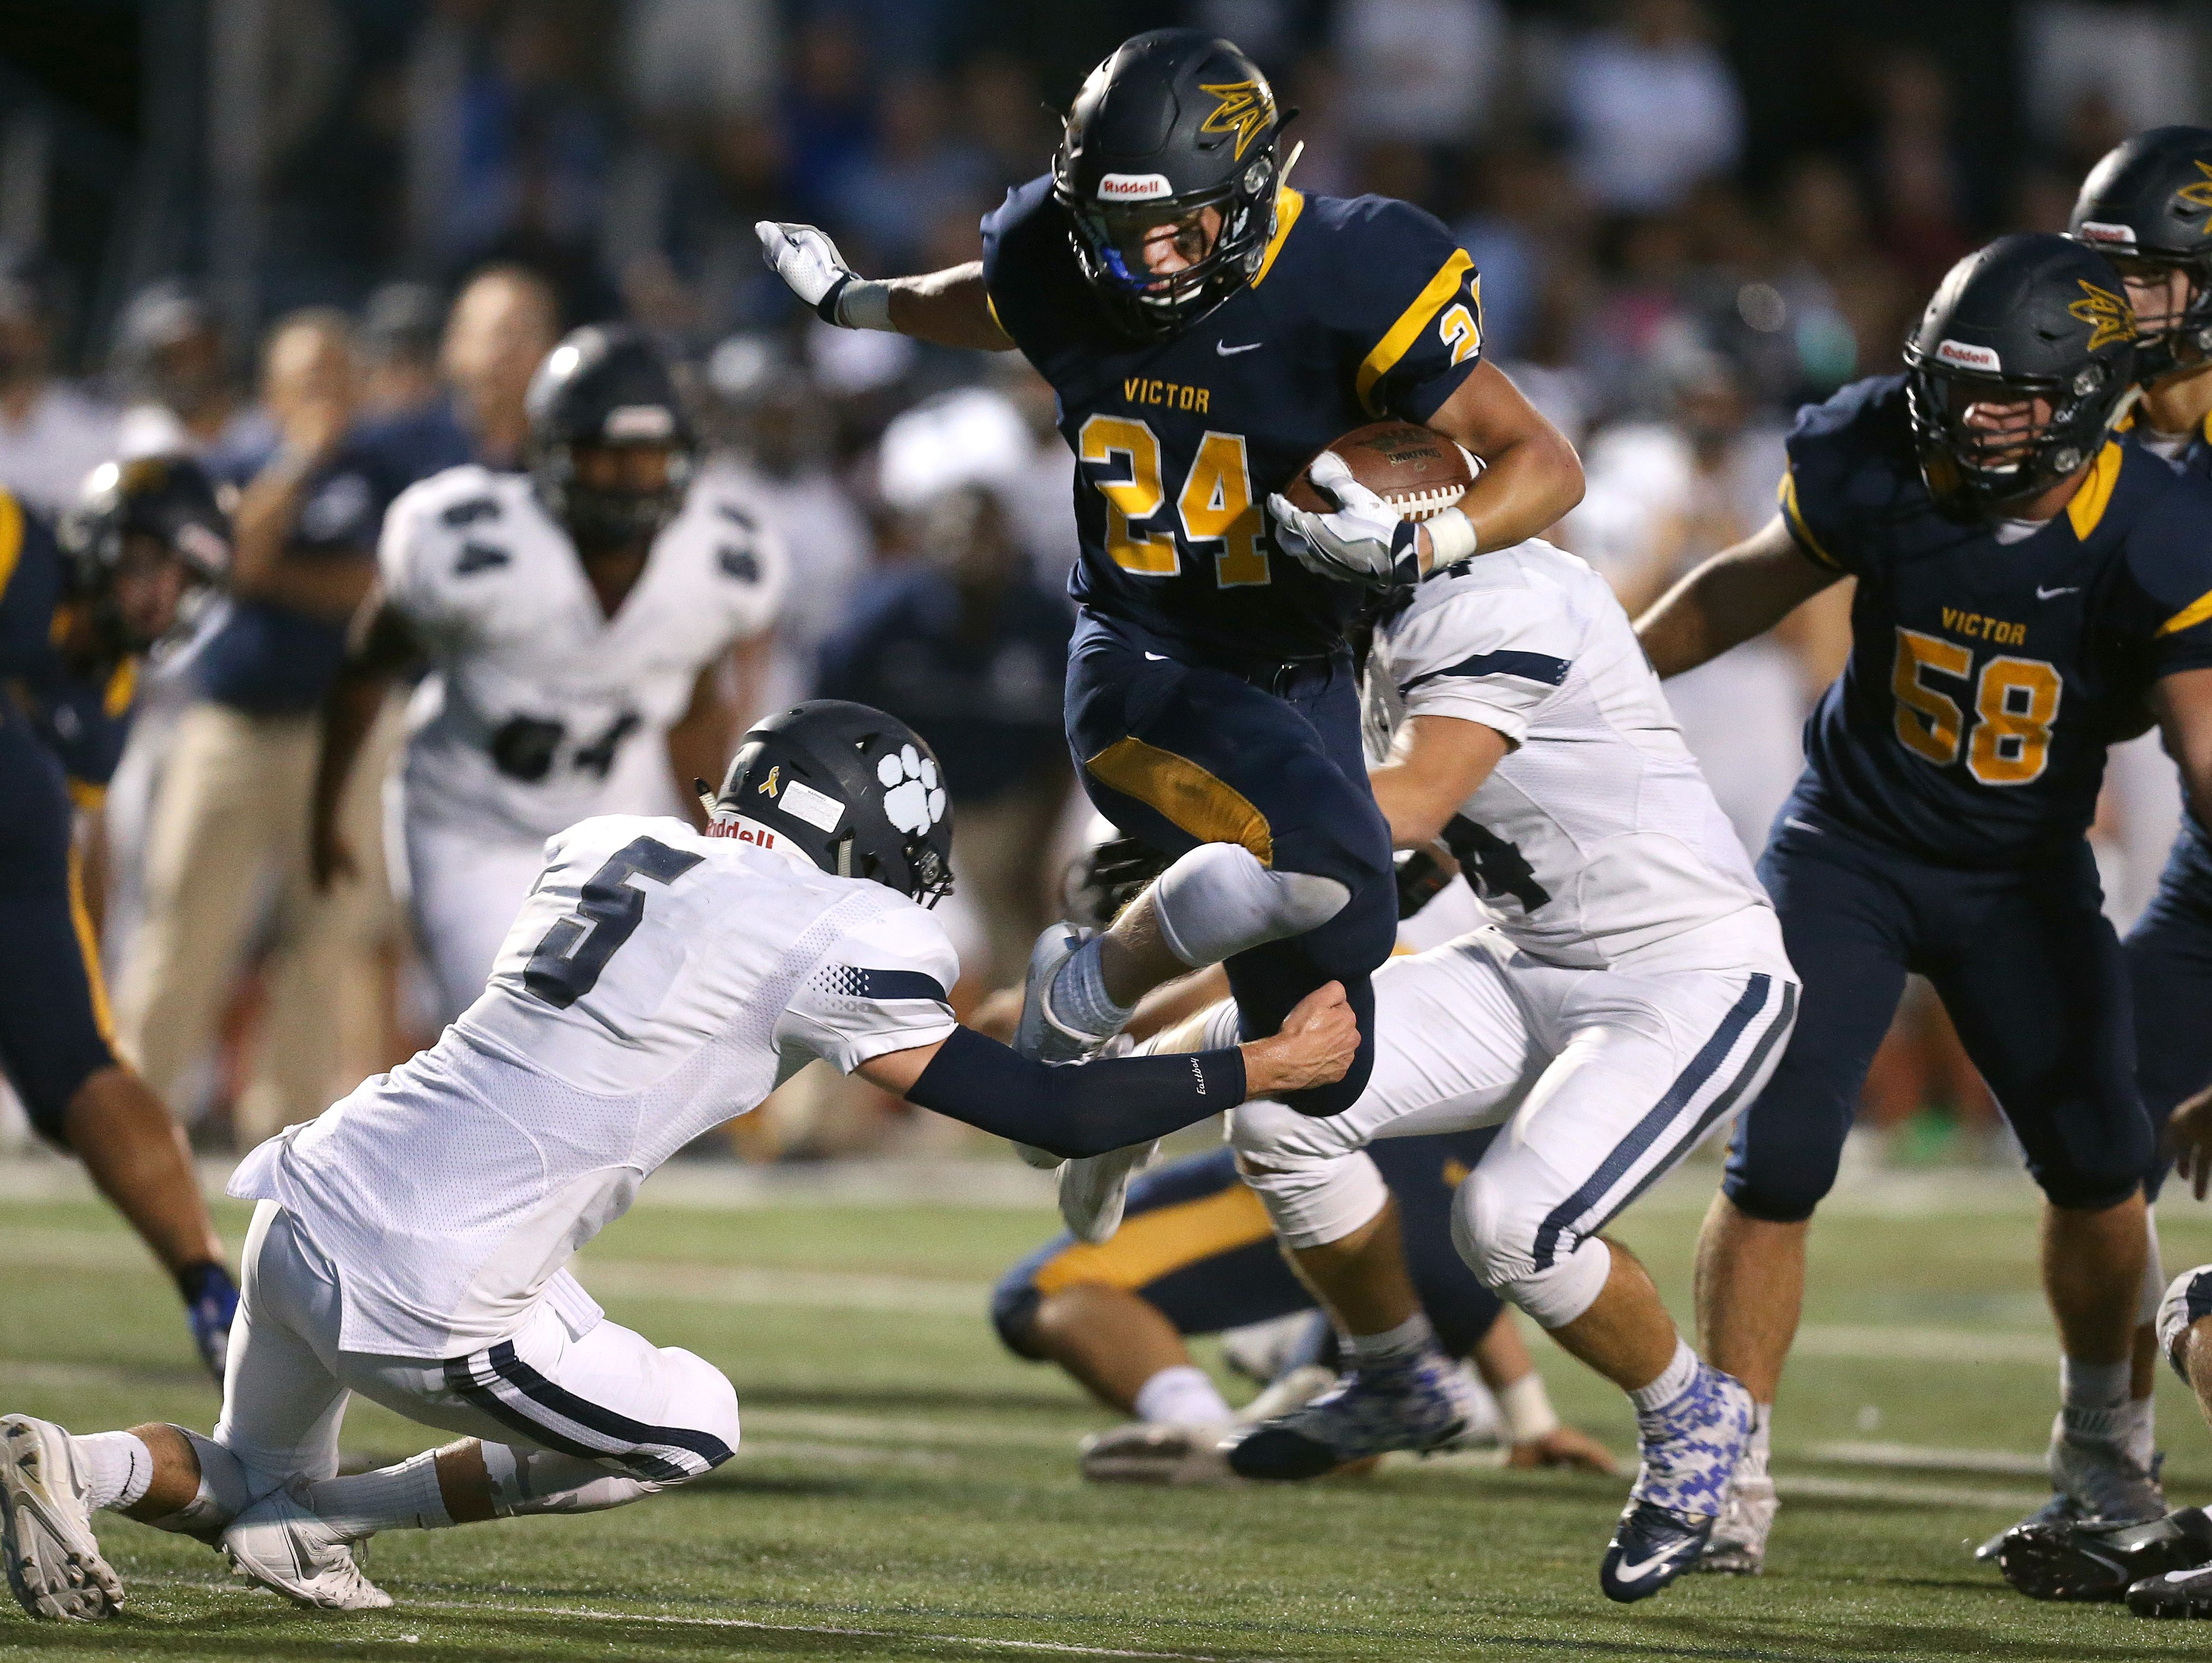 Victor running back Mitchell Spindler (24) leaps over the Pittsford's Frankie Imburgia (5).